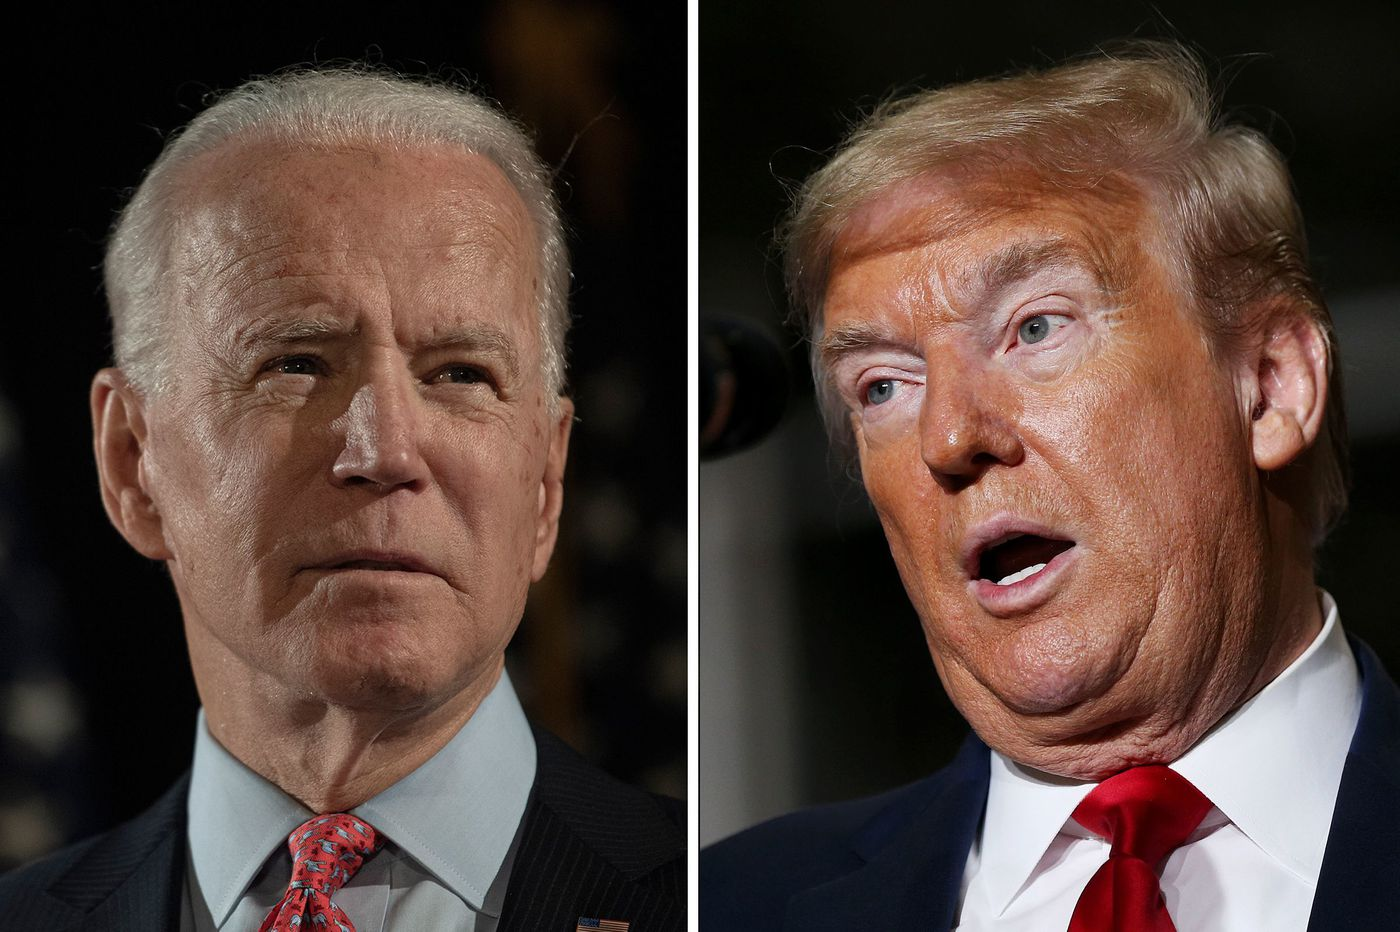 Trump and Biden will face off in competing town halls on separate networks tonight